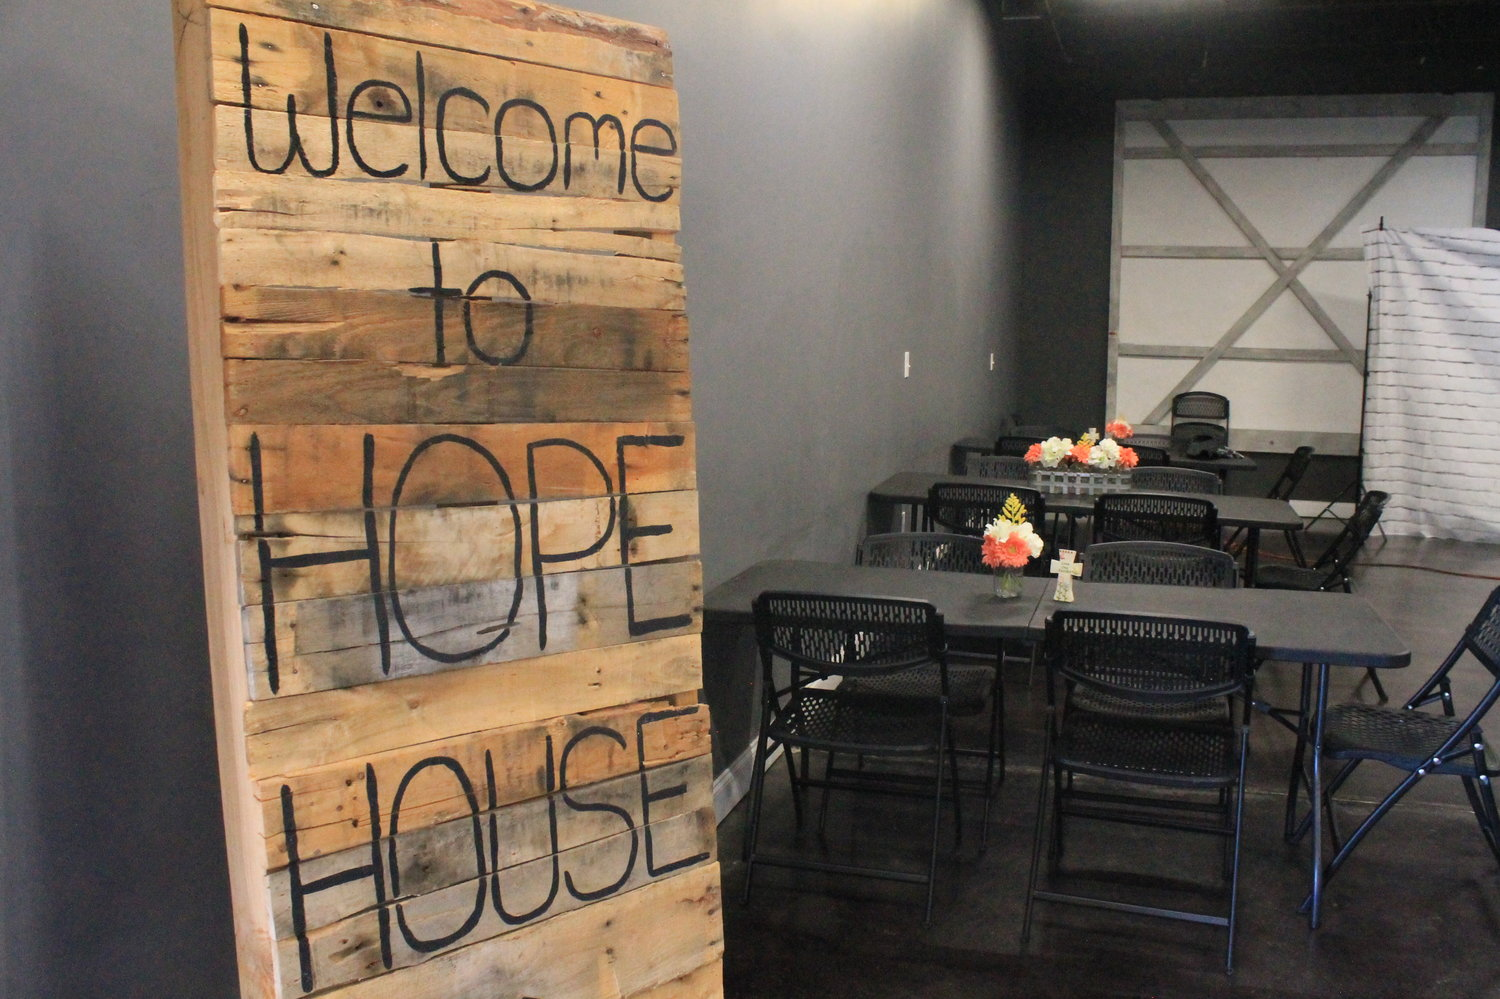 Hope House Church is expected to reopen its facility for meals again in July.